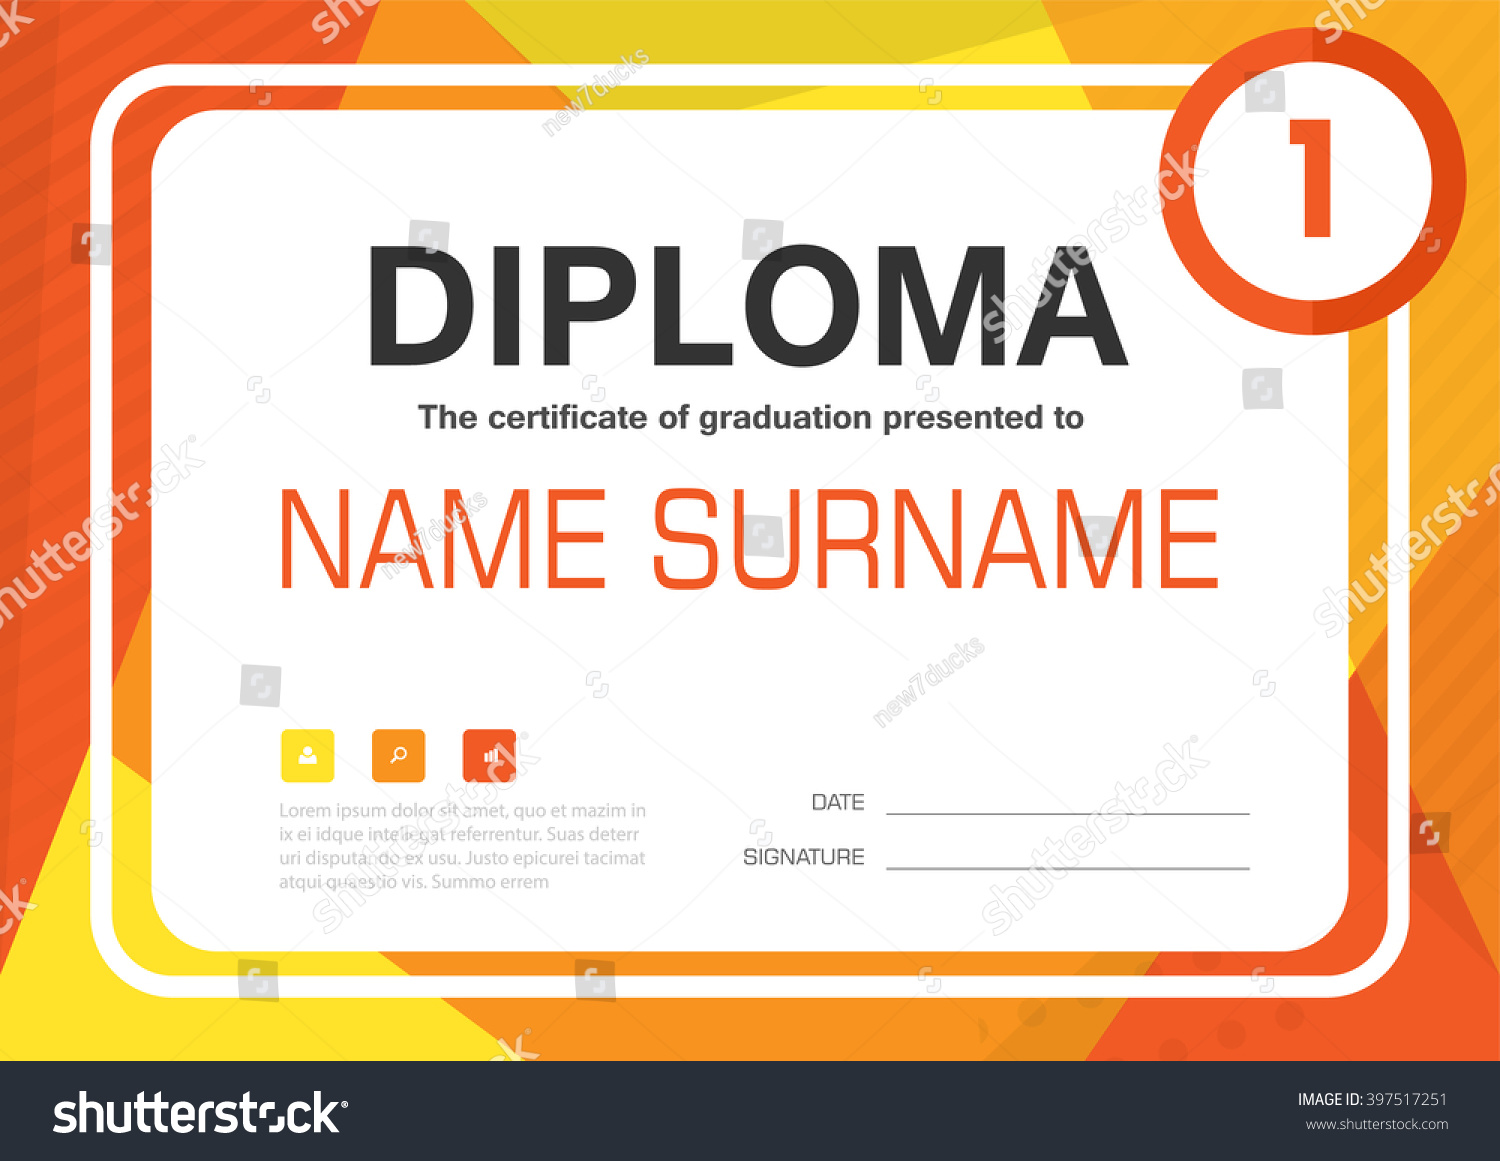 Orange yellow A4 Diploma certificate background template layout design